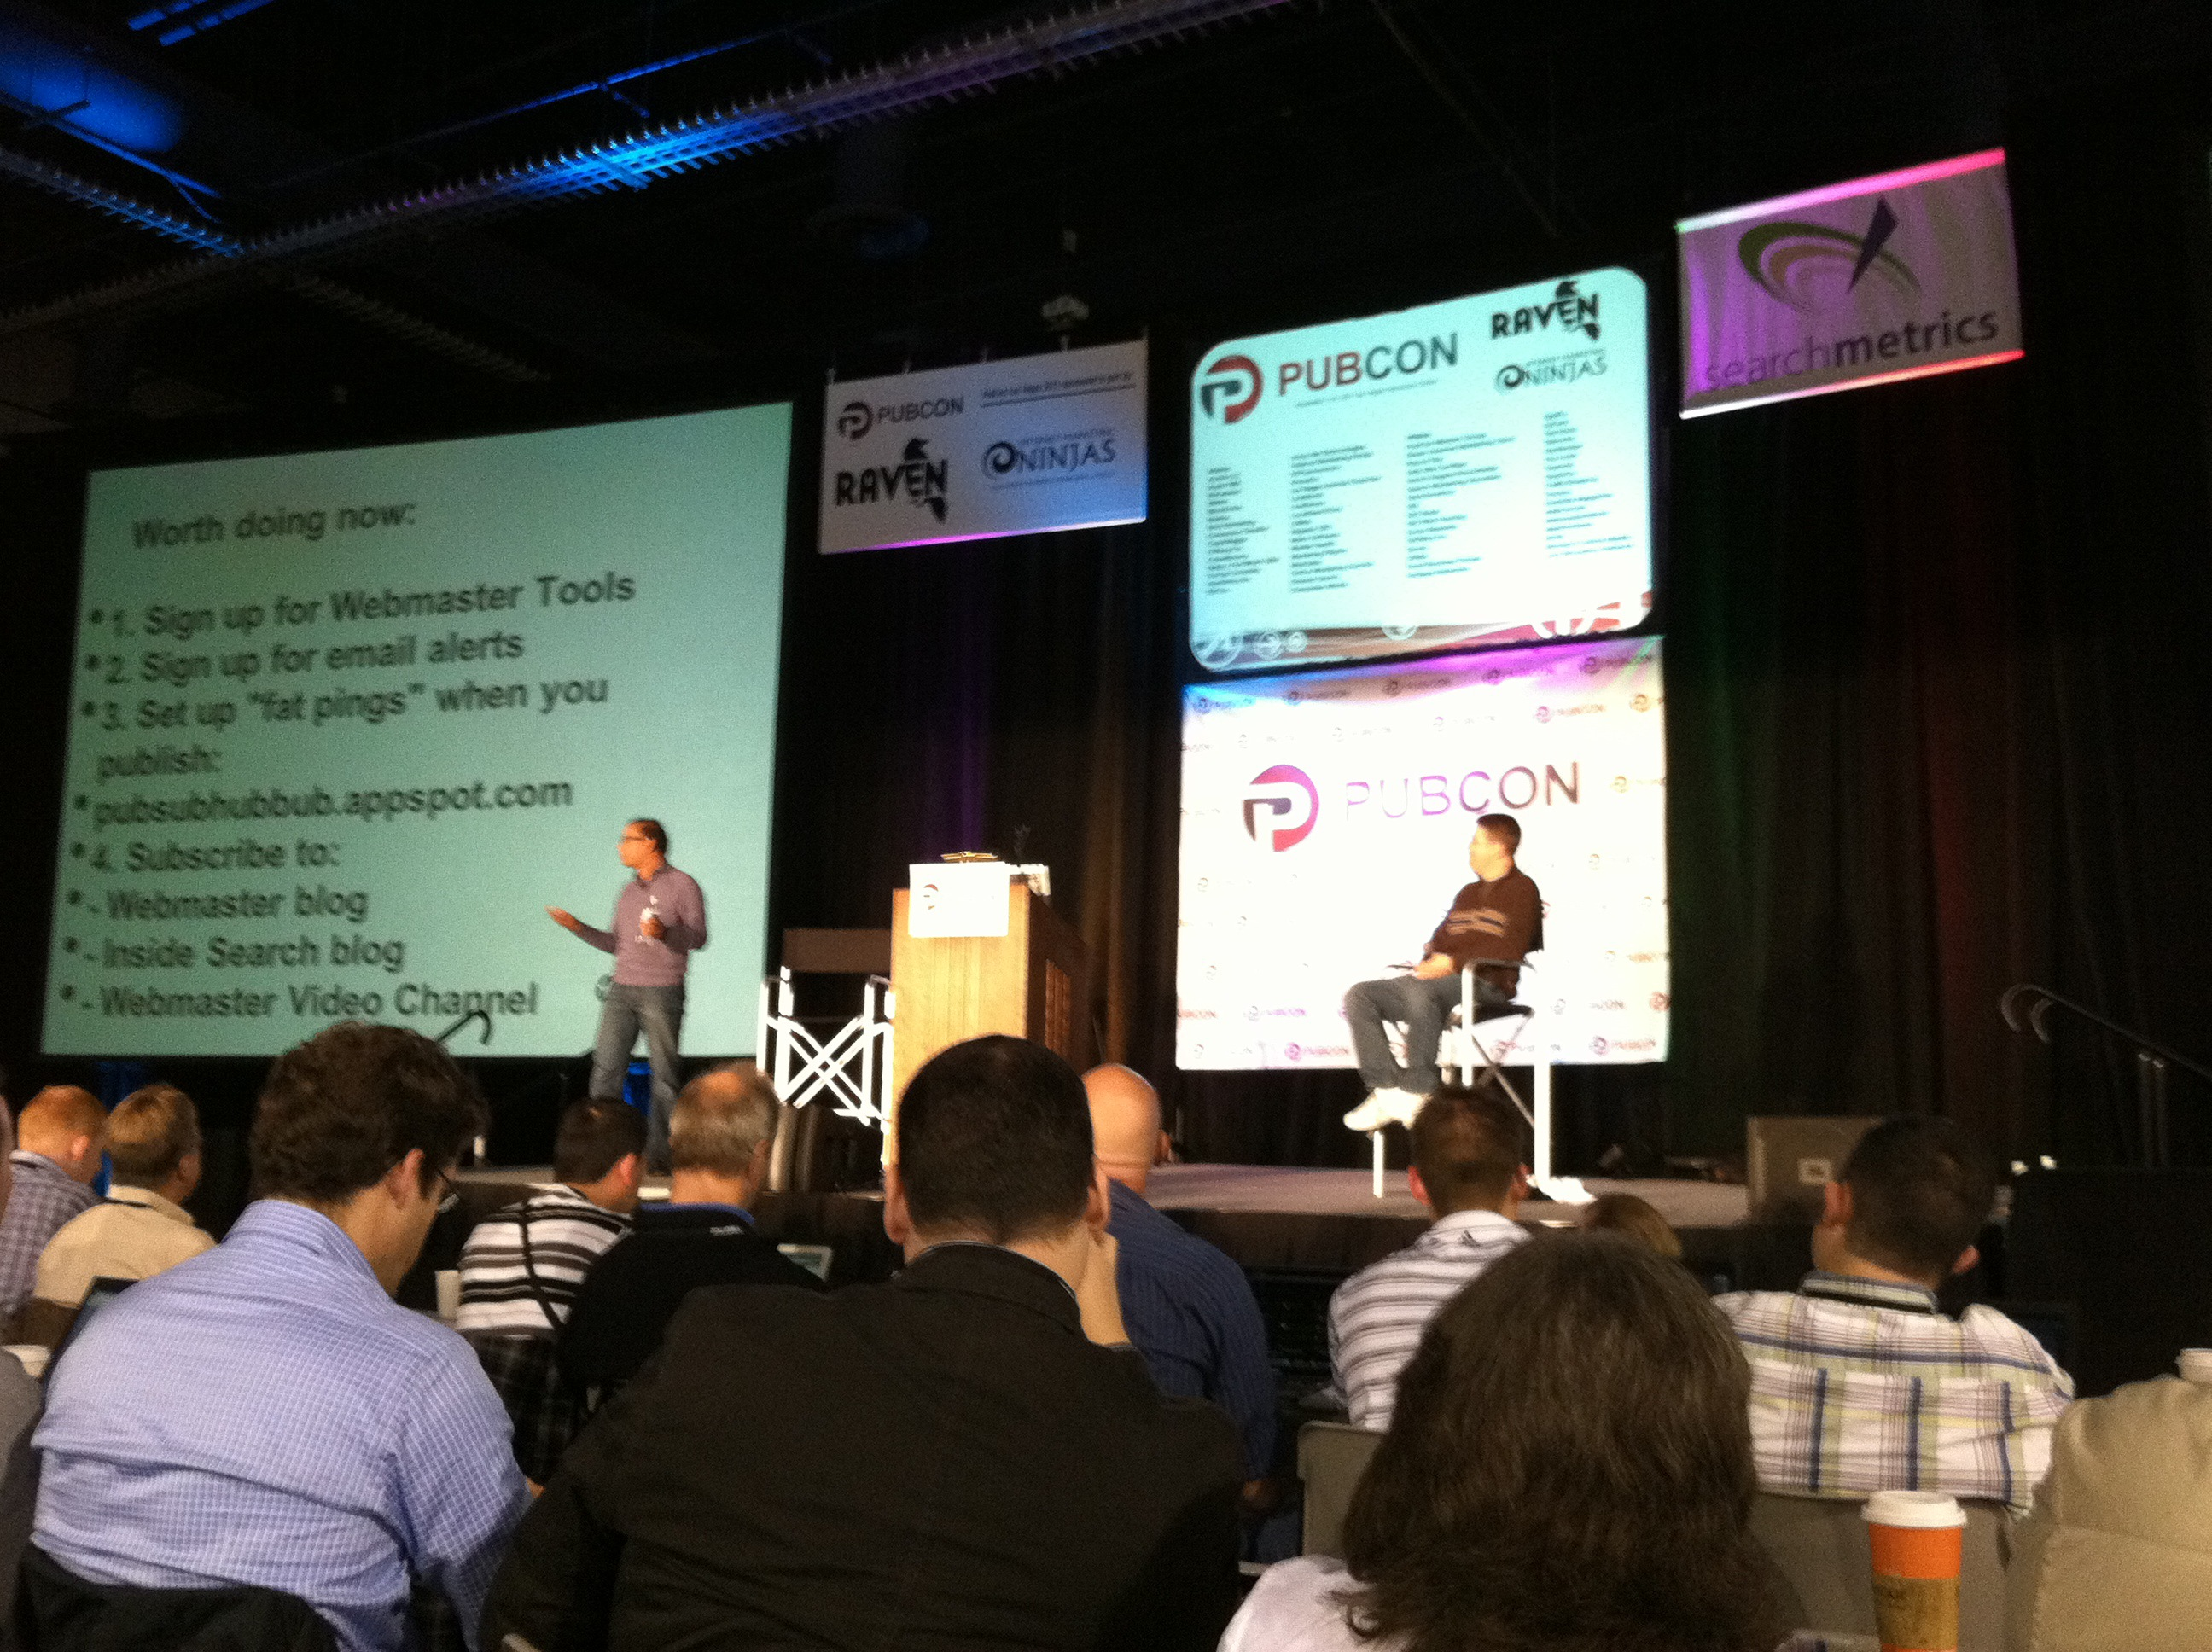 #pubcon Matt Cutts and Amit Singhal Answer Questions and Offer Advice